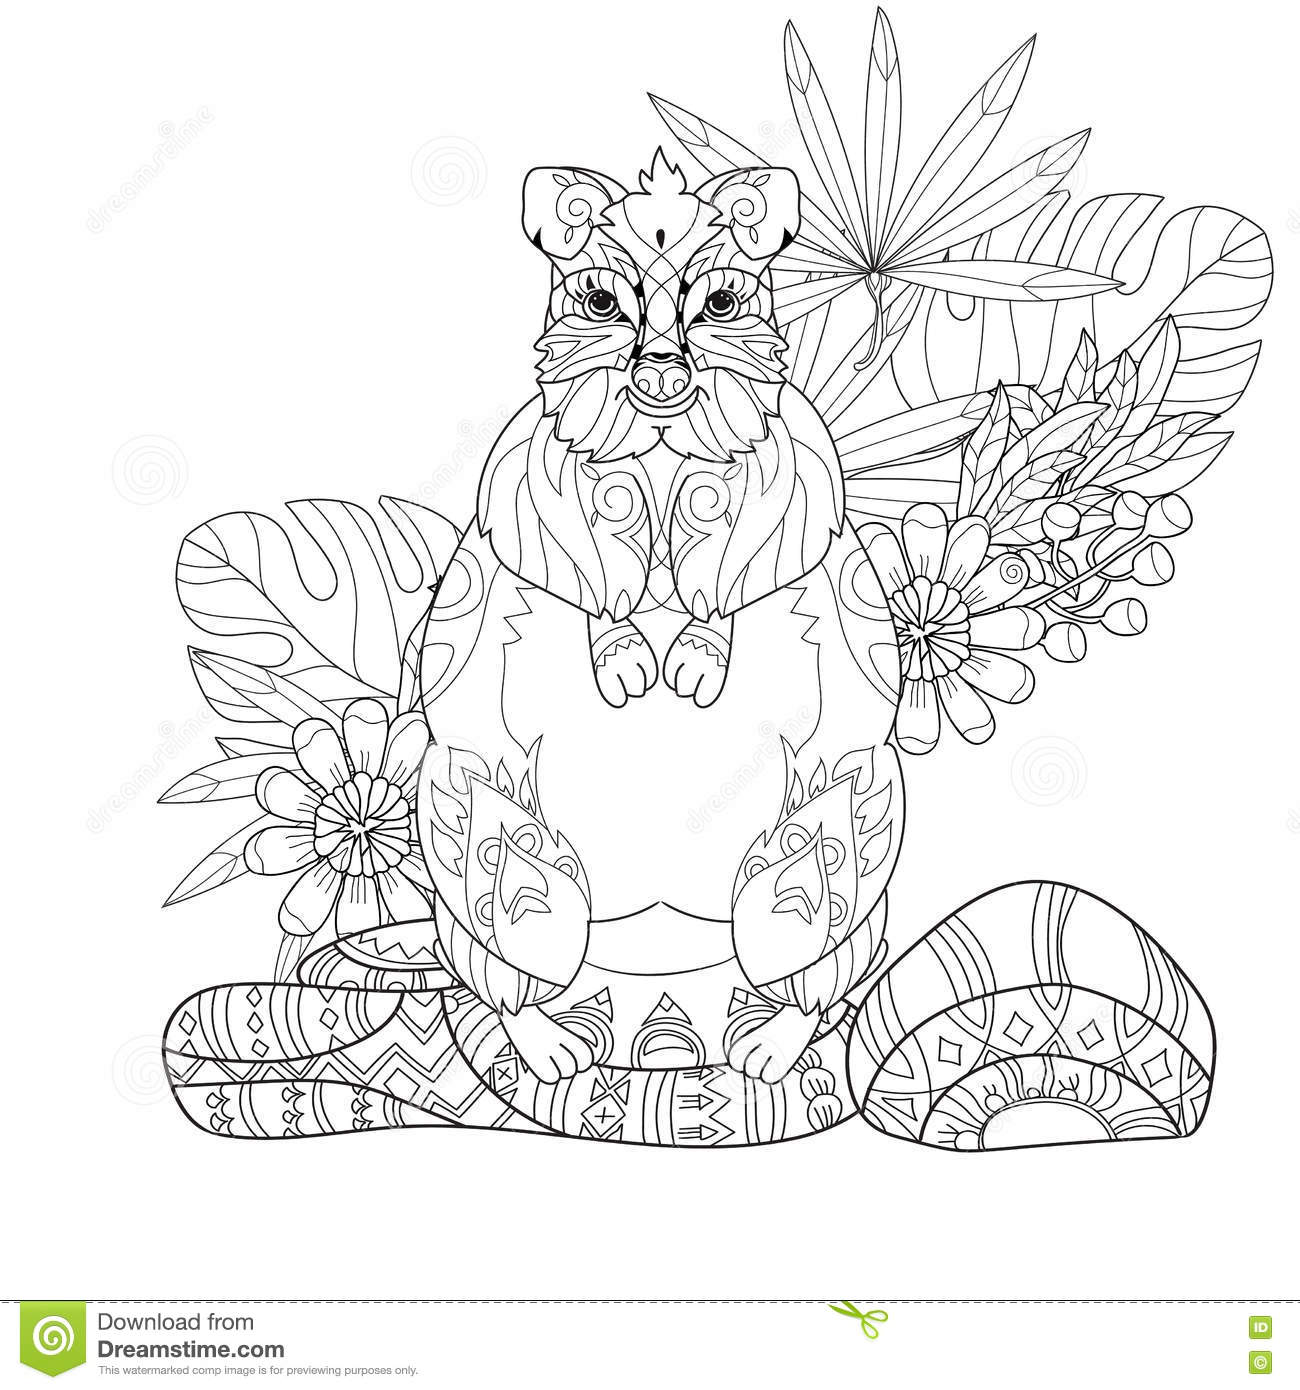 Hand Drawn Animal Quokka Doodle Stock Vector Image 74004162